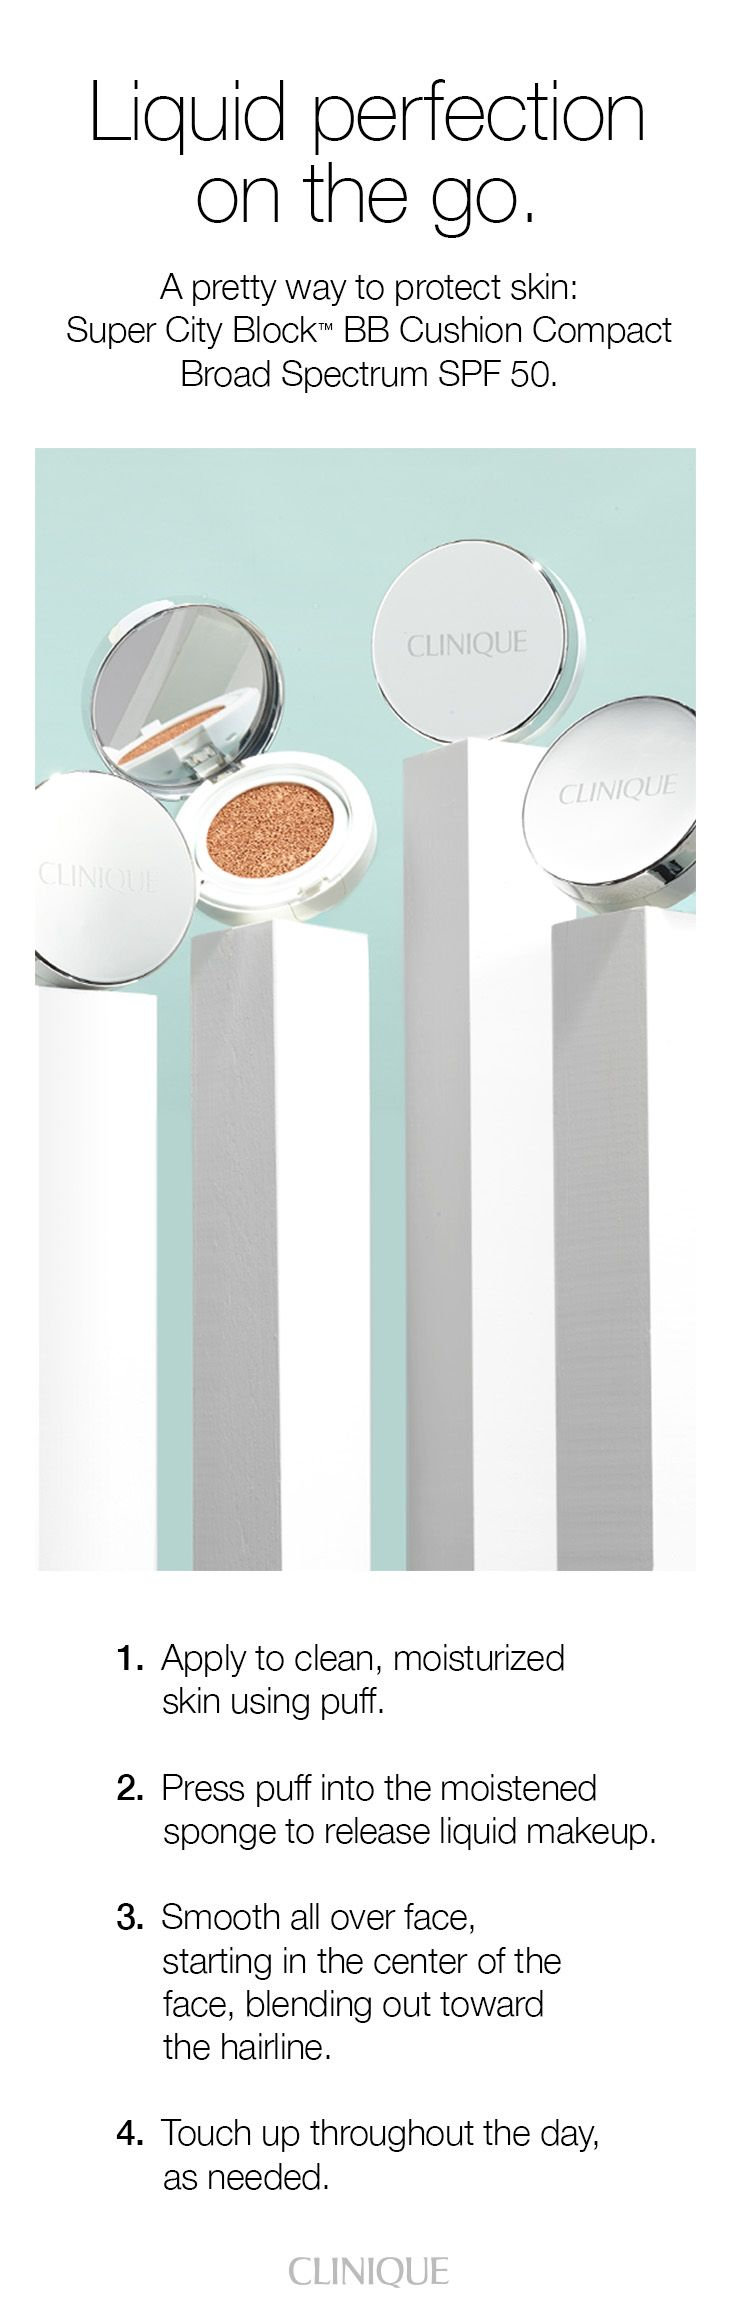 Super City Block BB Cushion Compact Broad Spectrum SPF 50: An easy way to protect and perfect skin on the go. Step 1: Apply to clean, moisturized skin using puff. Step 2: Press puff into the moistened sponge to release liquid makeup. Step 3: Smooth all over face, starting in the center of the face, blending out toward the hairline. Step 4: Touch up throughout the day, as needed.